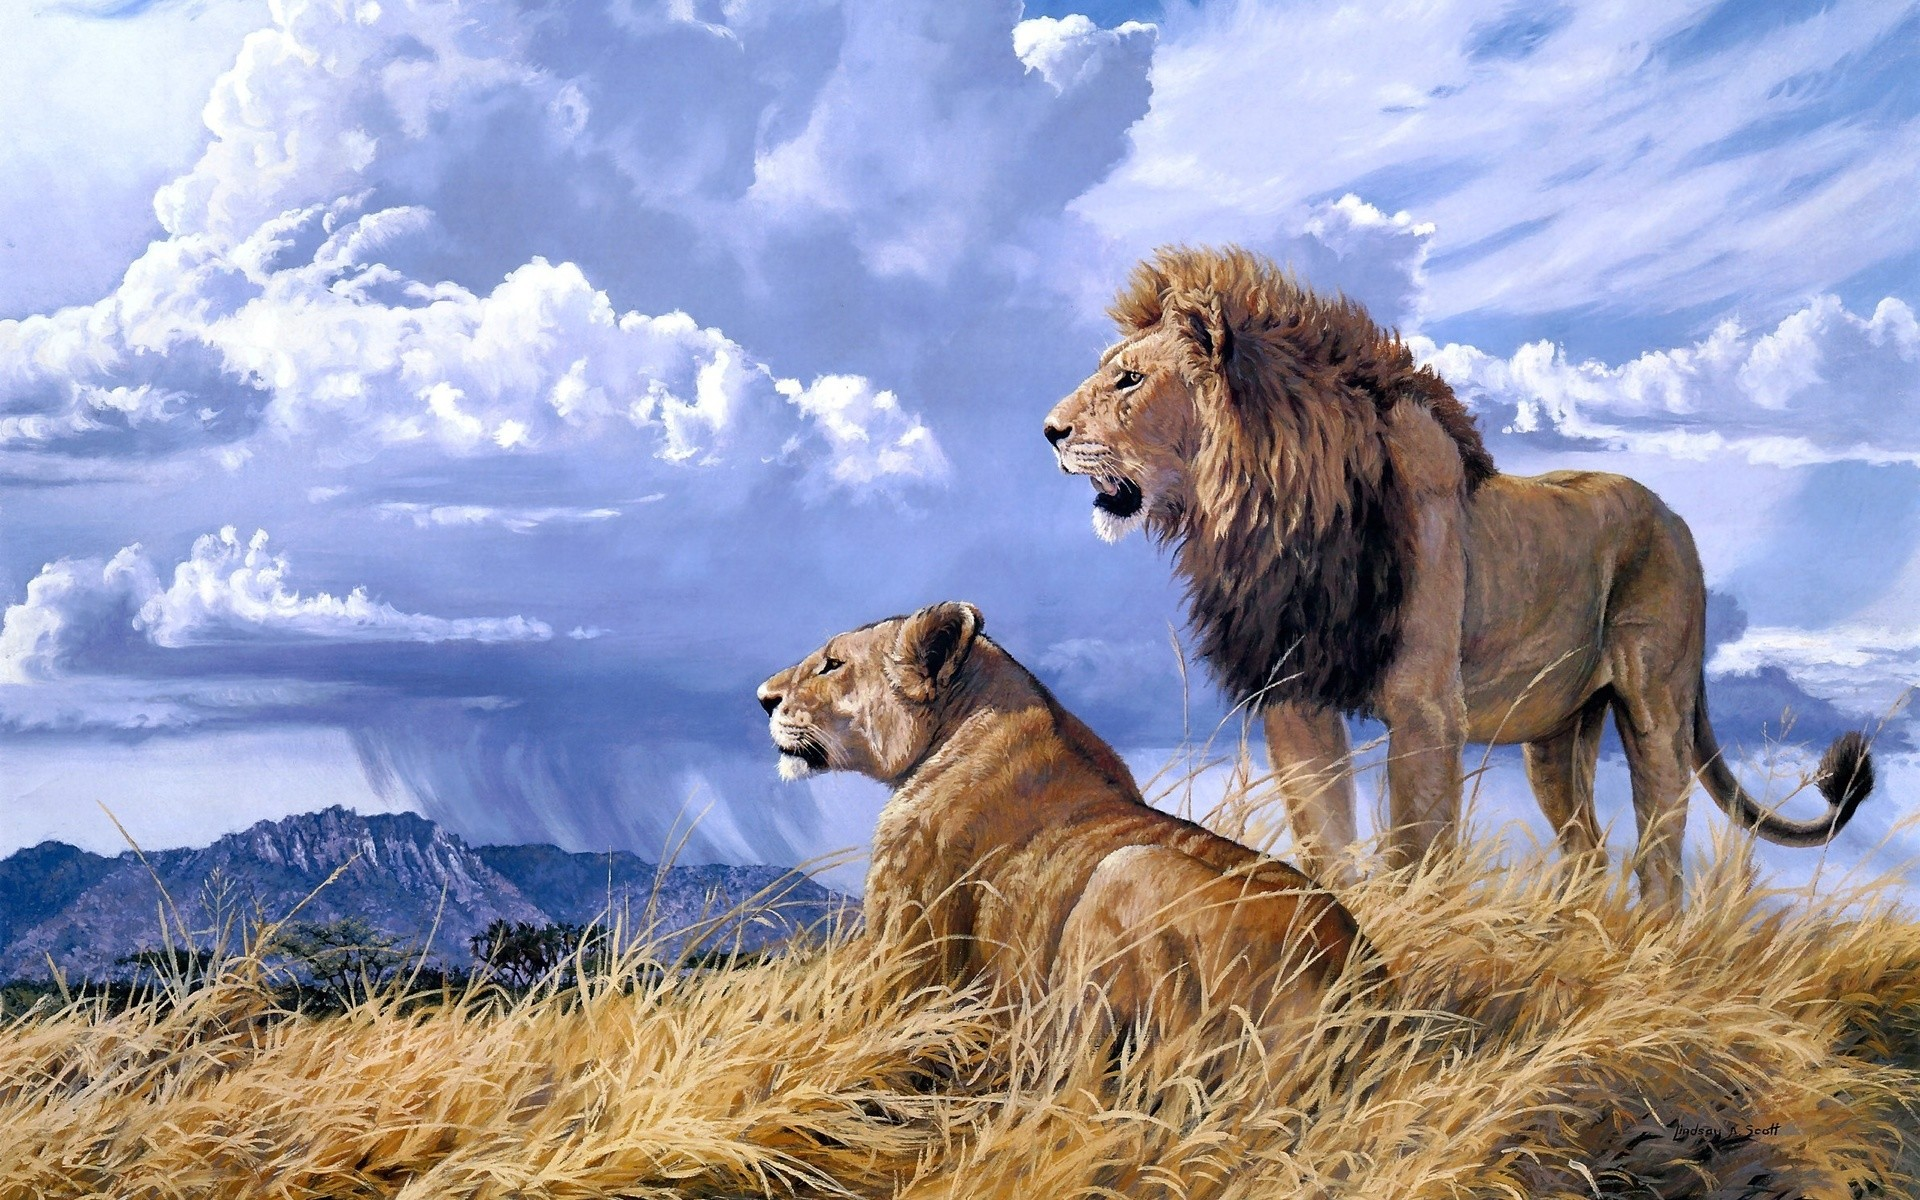 1920x1200 animals cats lion painting art landscape nature wildlife africa grass .